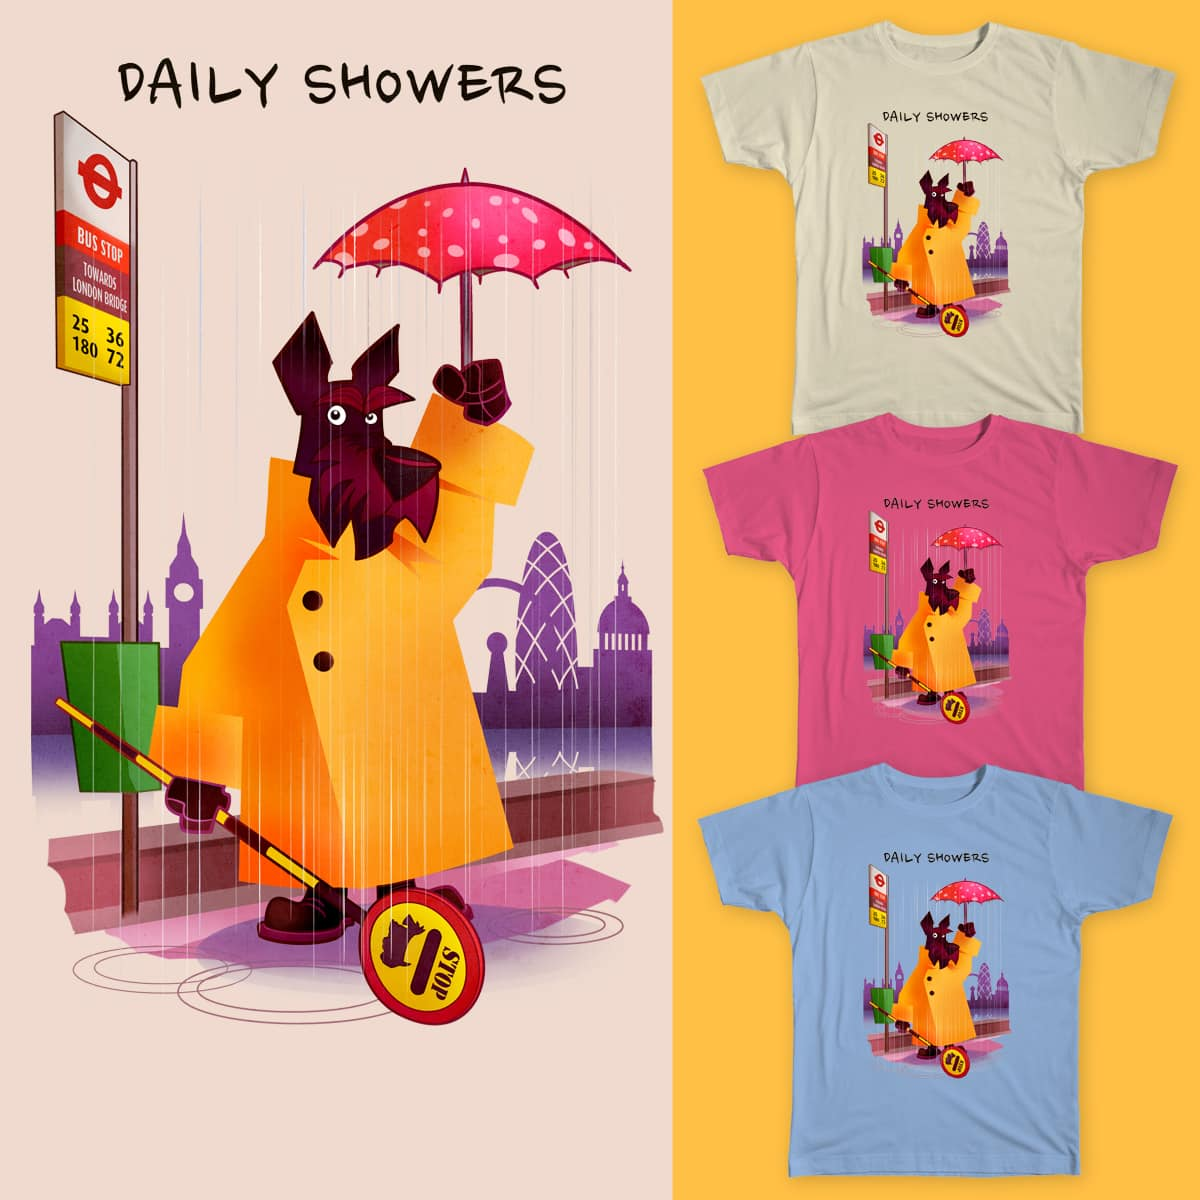 Daily Showers by martoonz on Threadless